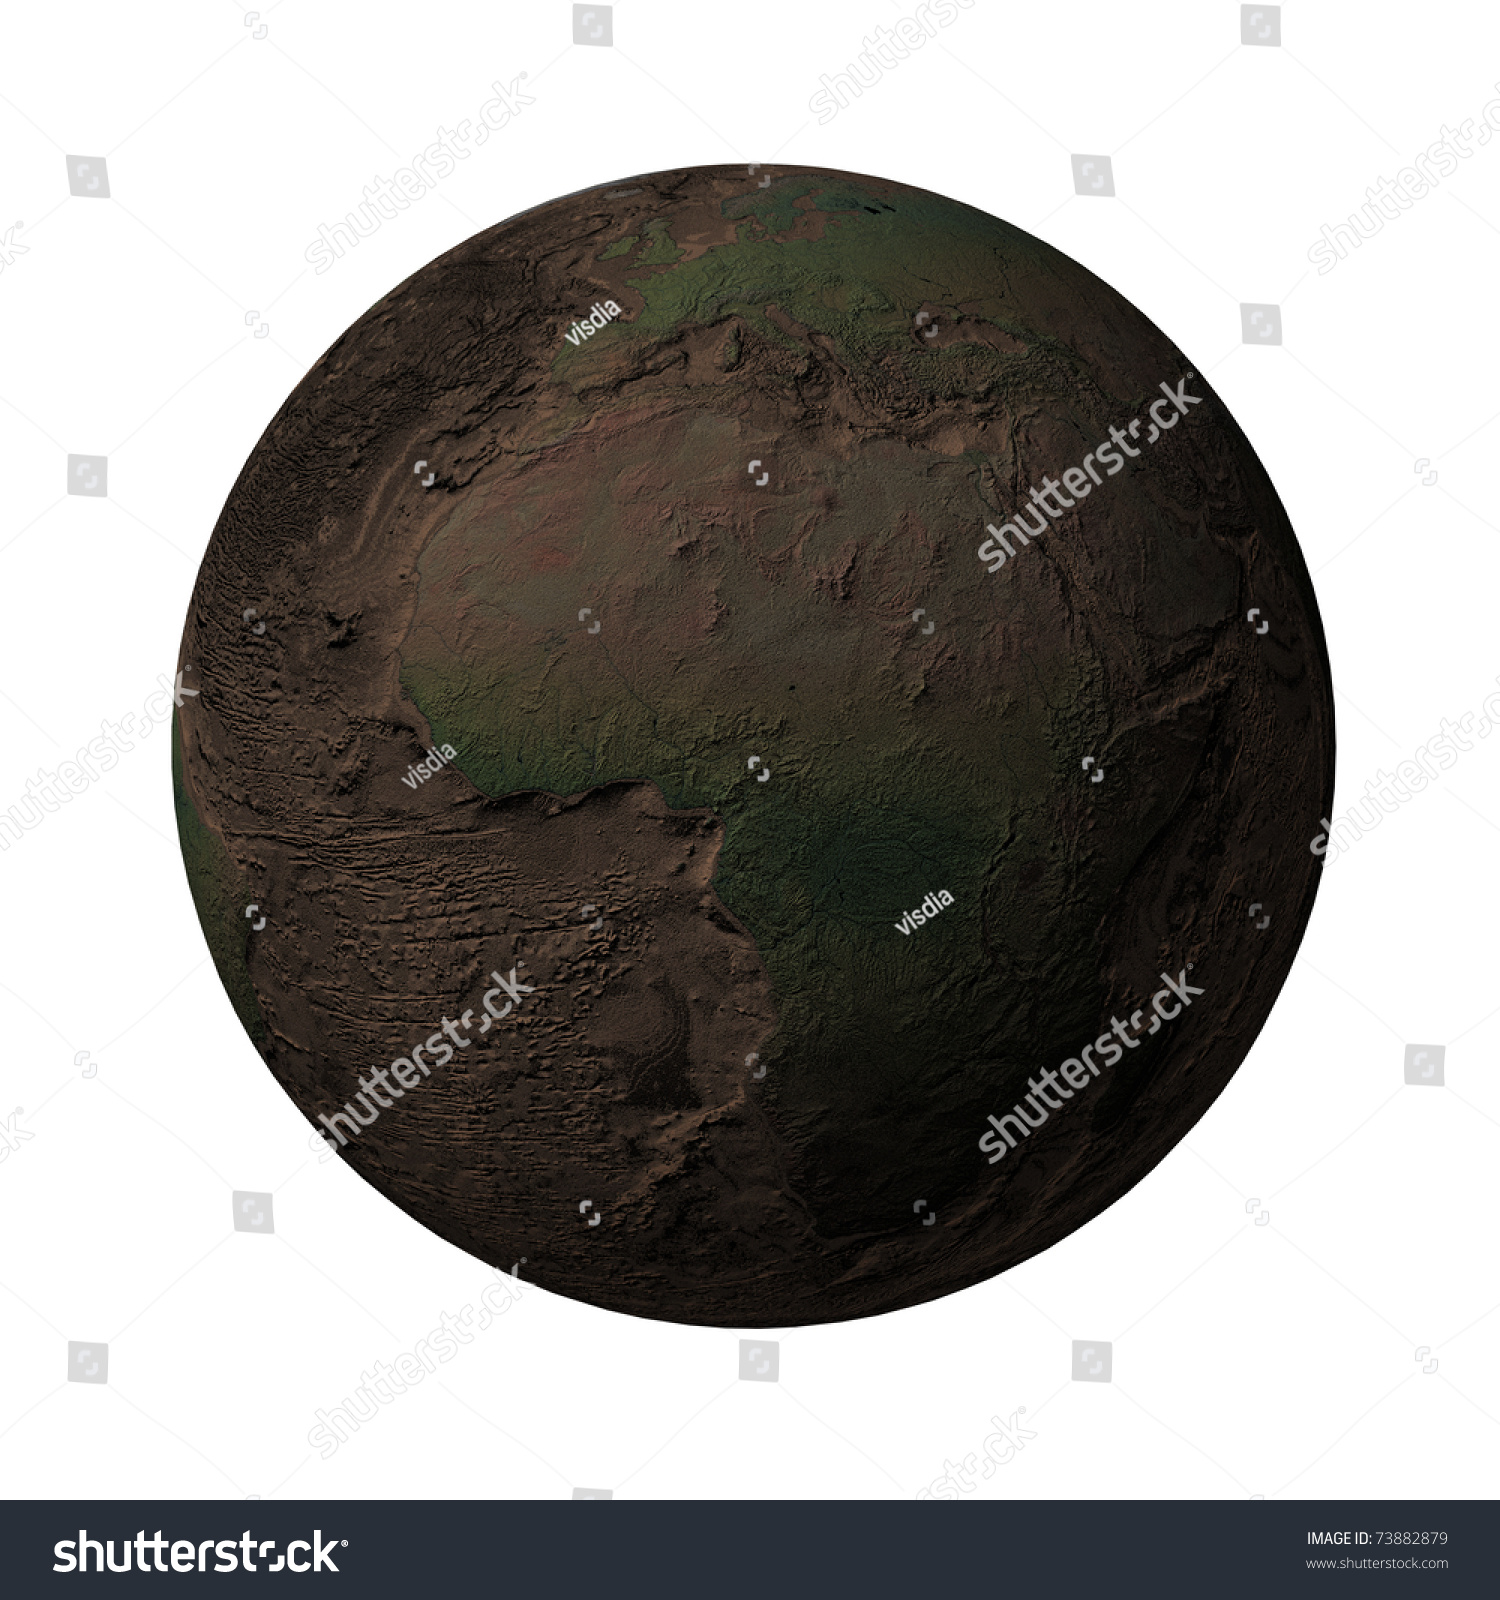 Earth without water plants africa europe stock illustration 73882879 earth without water and plants africa europe ccuart Choice Image